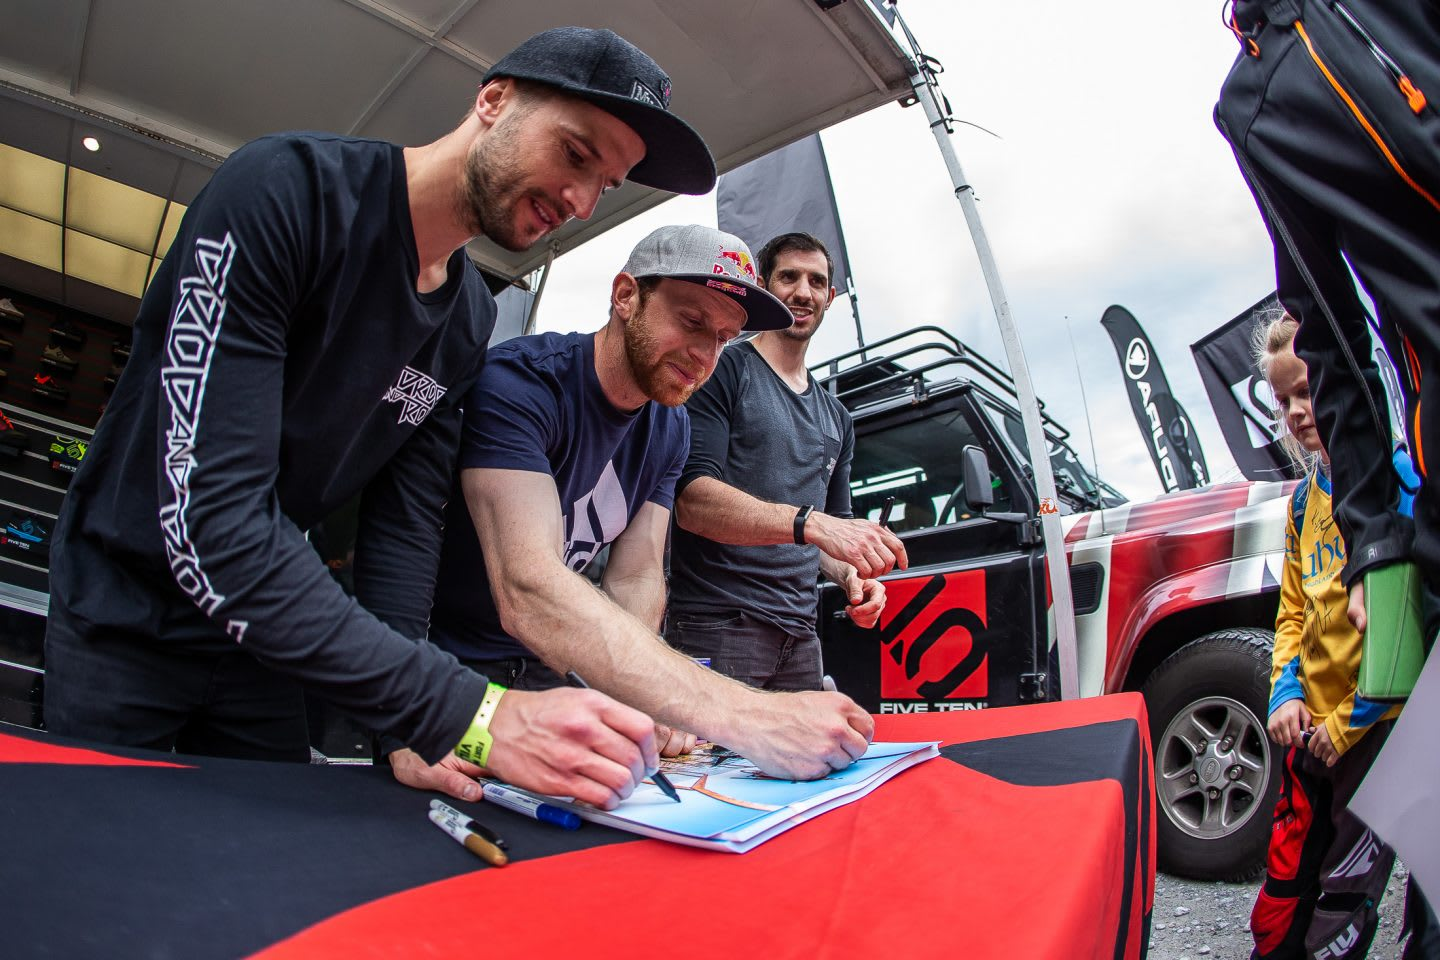 Mountainbike pro Danny MacAskill is signing autographs